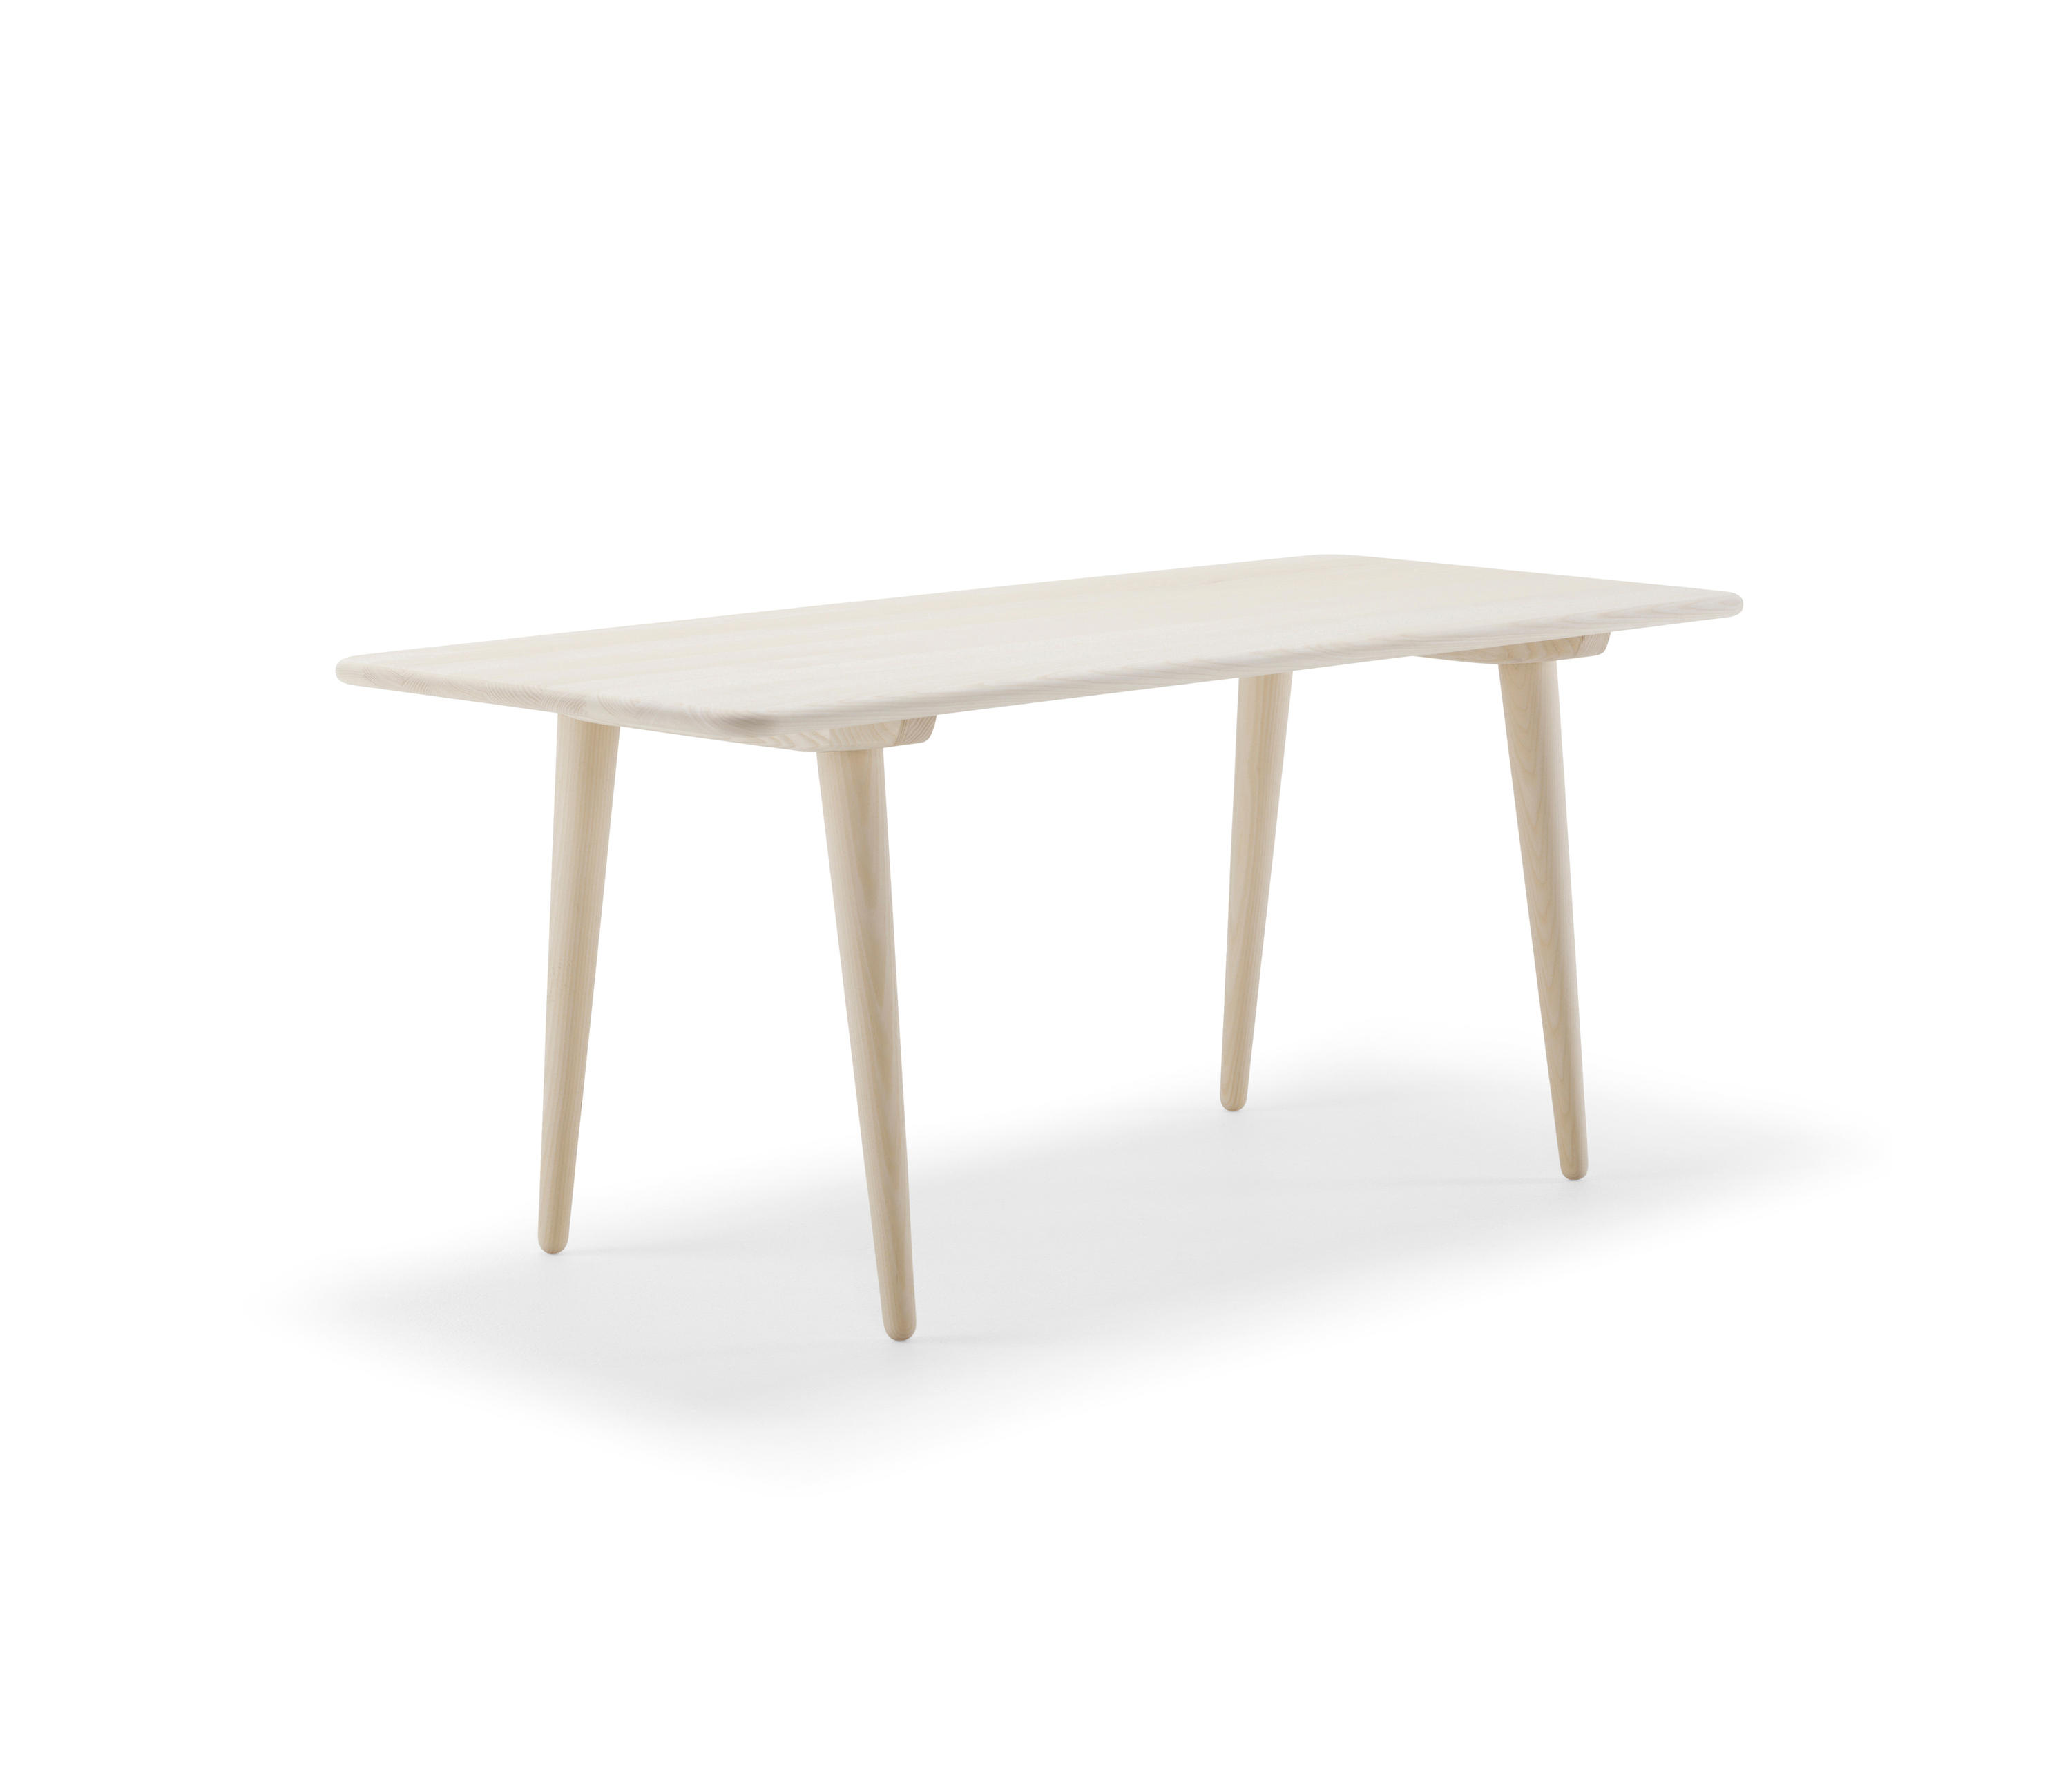 CH011 Lounge tables from Carl Hansen & S¸n